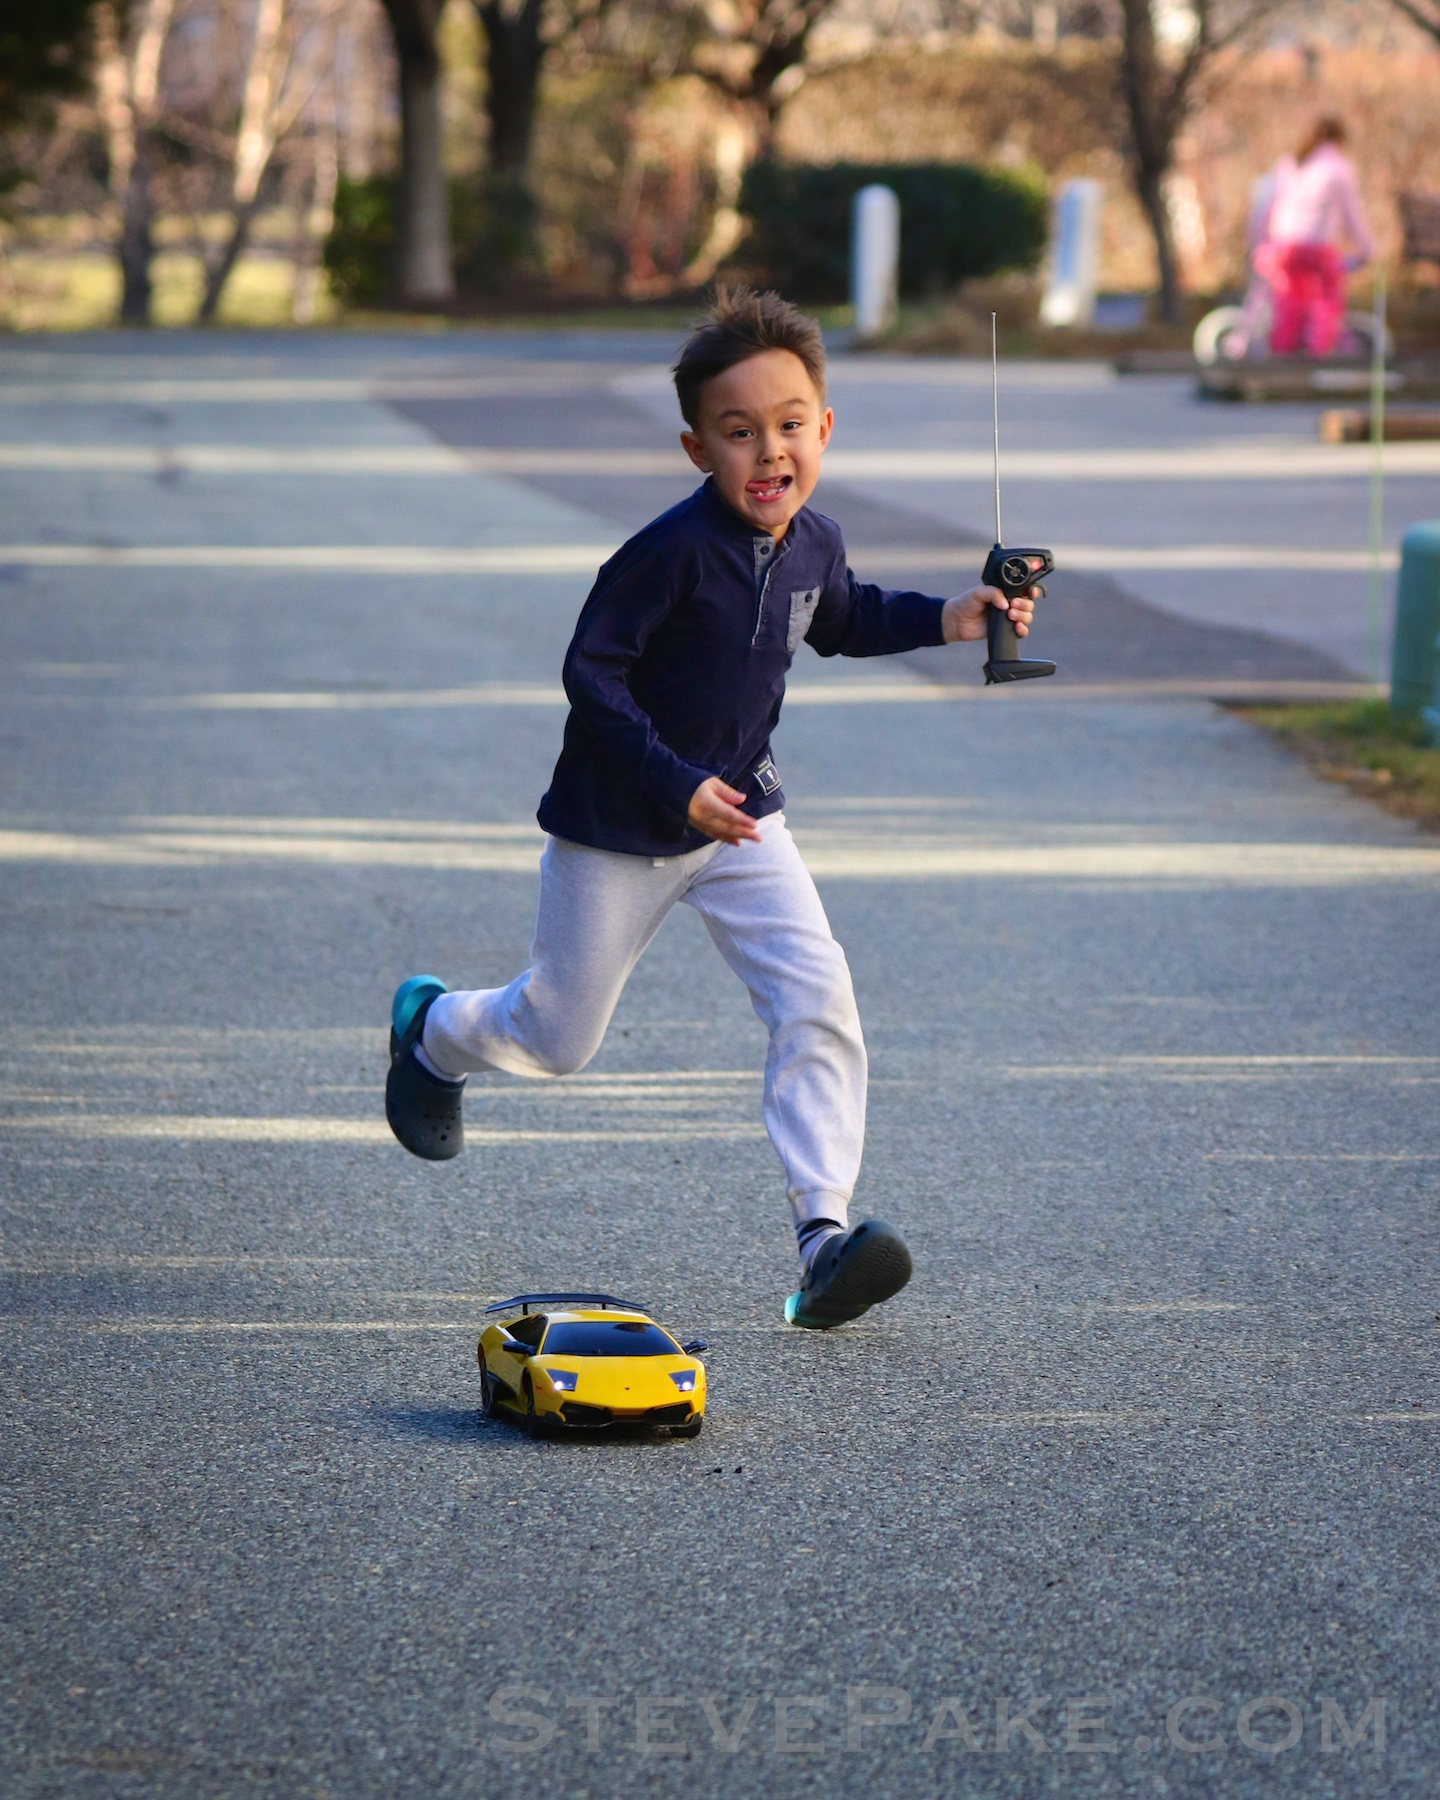 William chasing his remote control Lamborghini. Check out his expression, and the fact that his legs are both in the air and surrounding his car. This was the perfect look and the perfect timing. :) Canon 7D Mark II and 100-400mm lens.